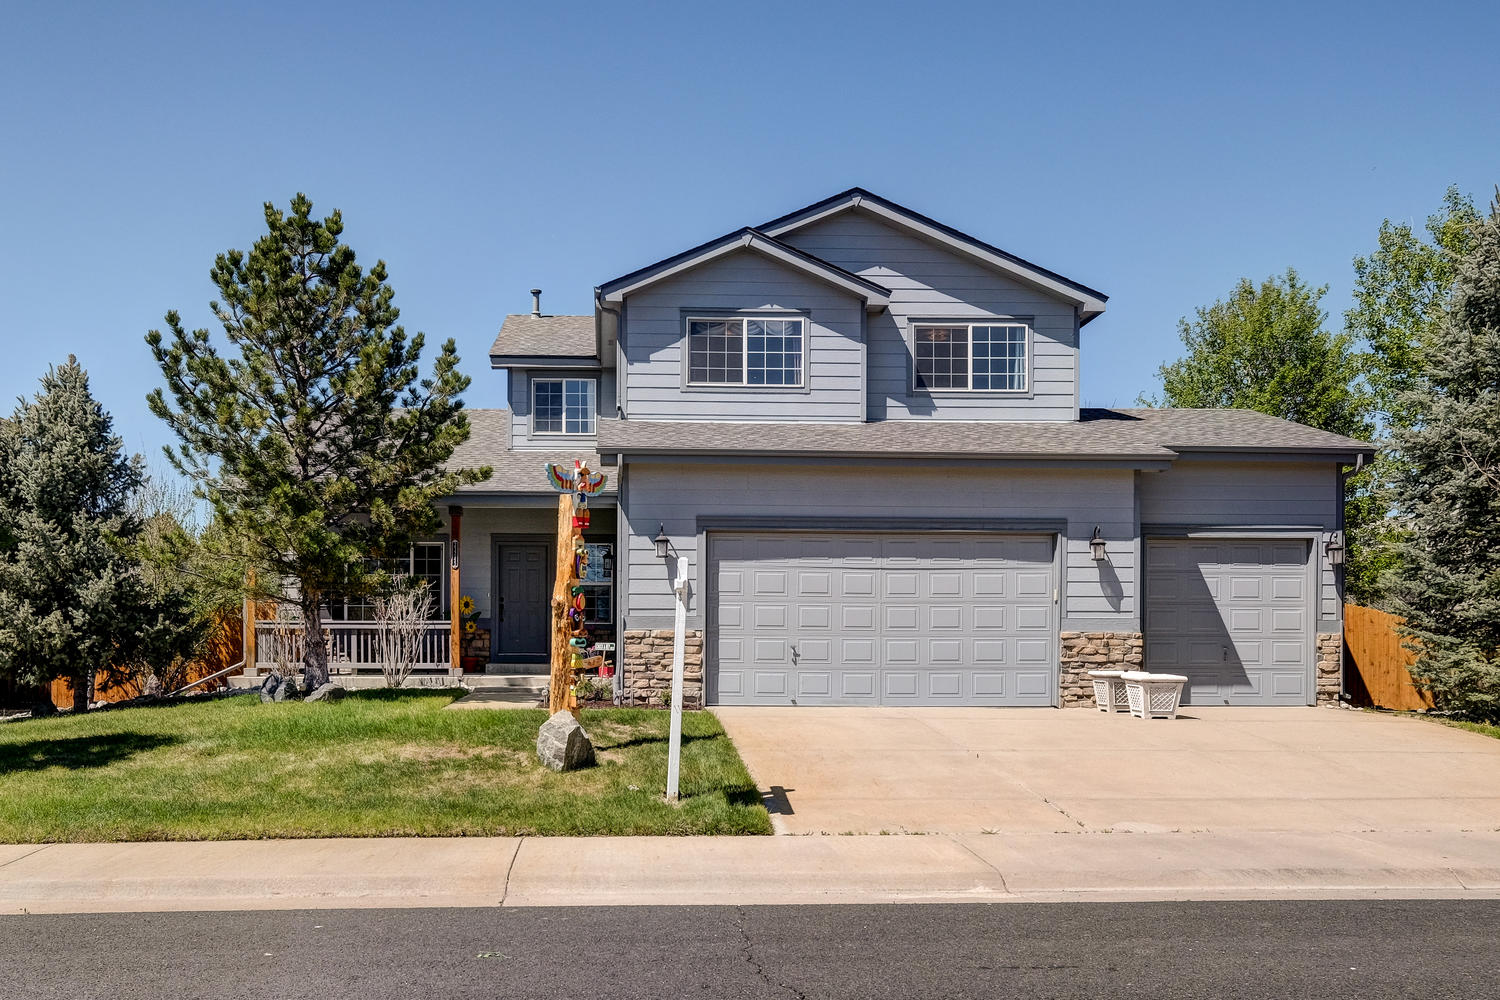 Single Family Home for Sale at Spectacular lot backs to open space 21745 Mount Elbert Pl Parker, Colorado, 80138 United States